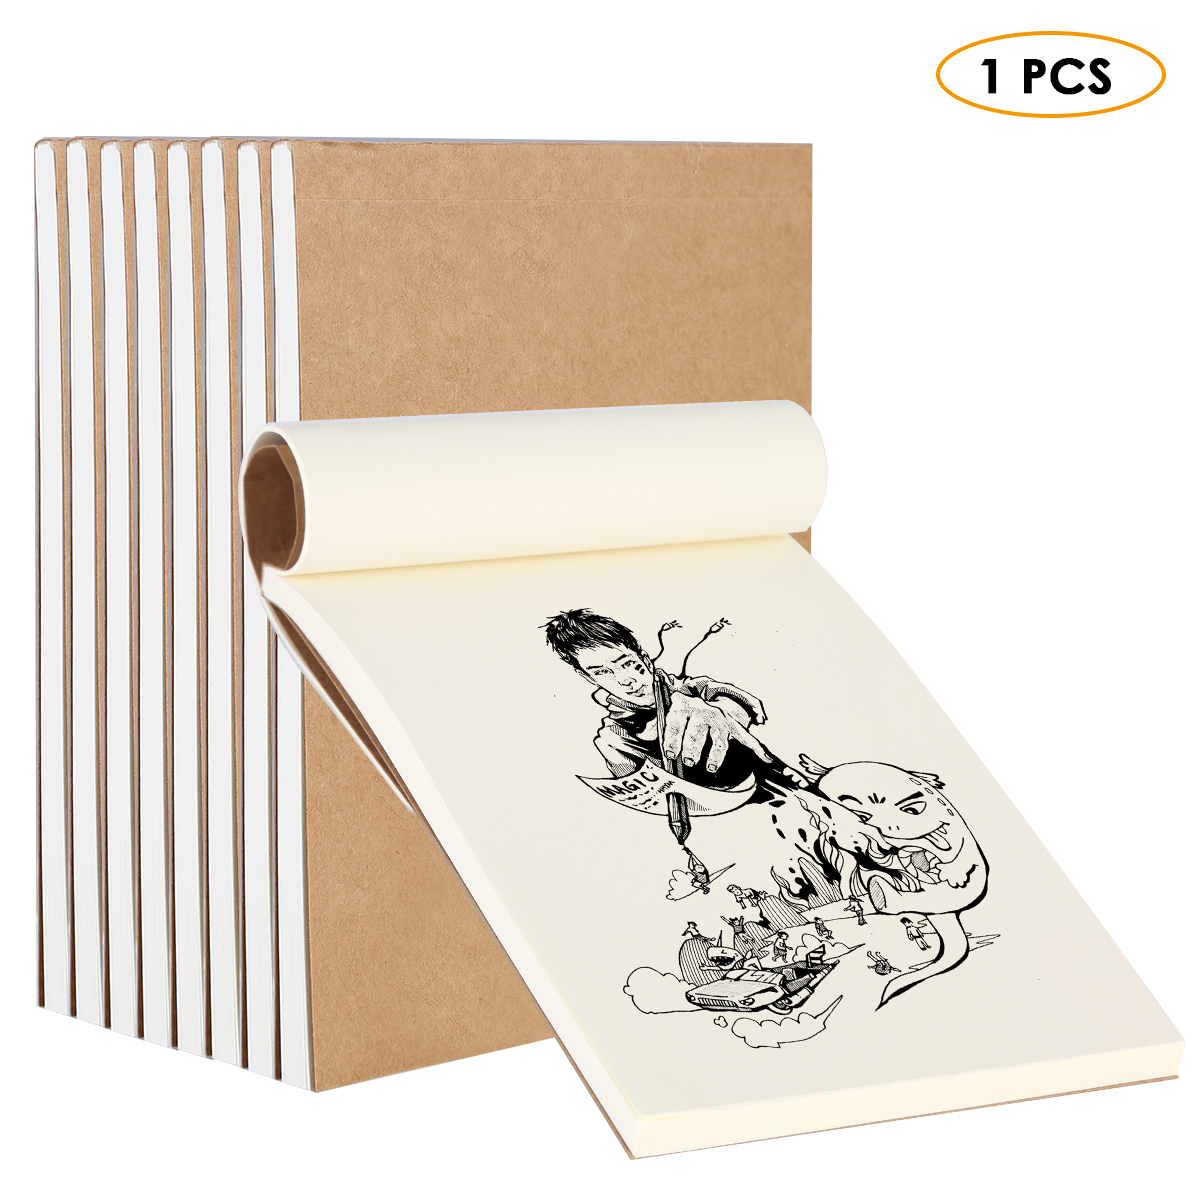 1Pc 80 Sheets Blank Flipbook Kraft Cover Drawing Sketchbook Thumb Flip Books For Animation Cartoon Creation​